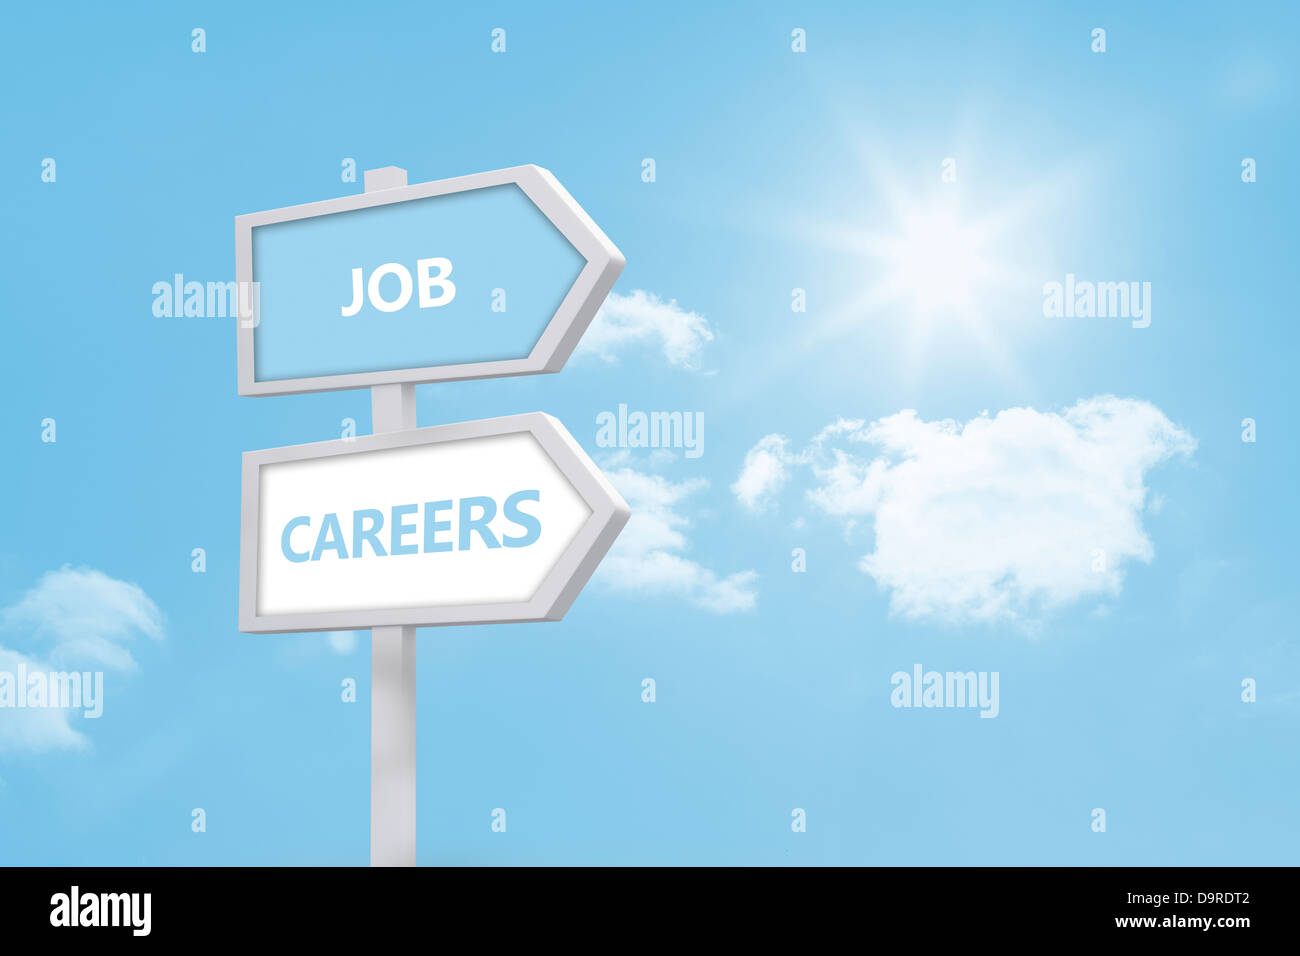 Job and careers road sign - Stock Image